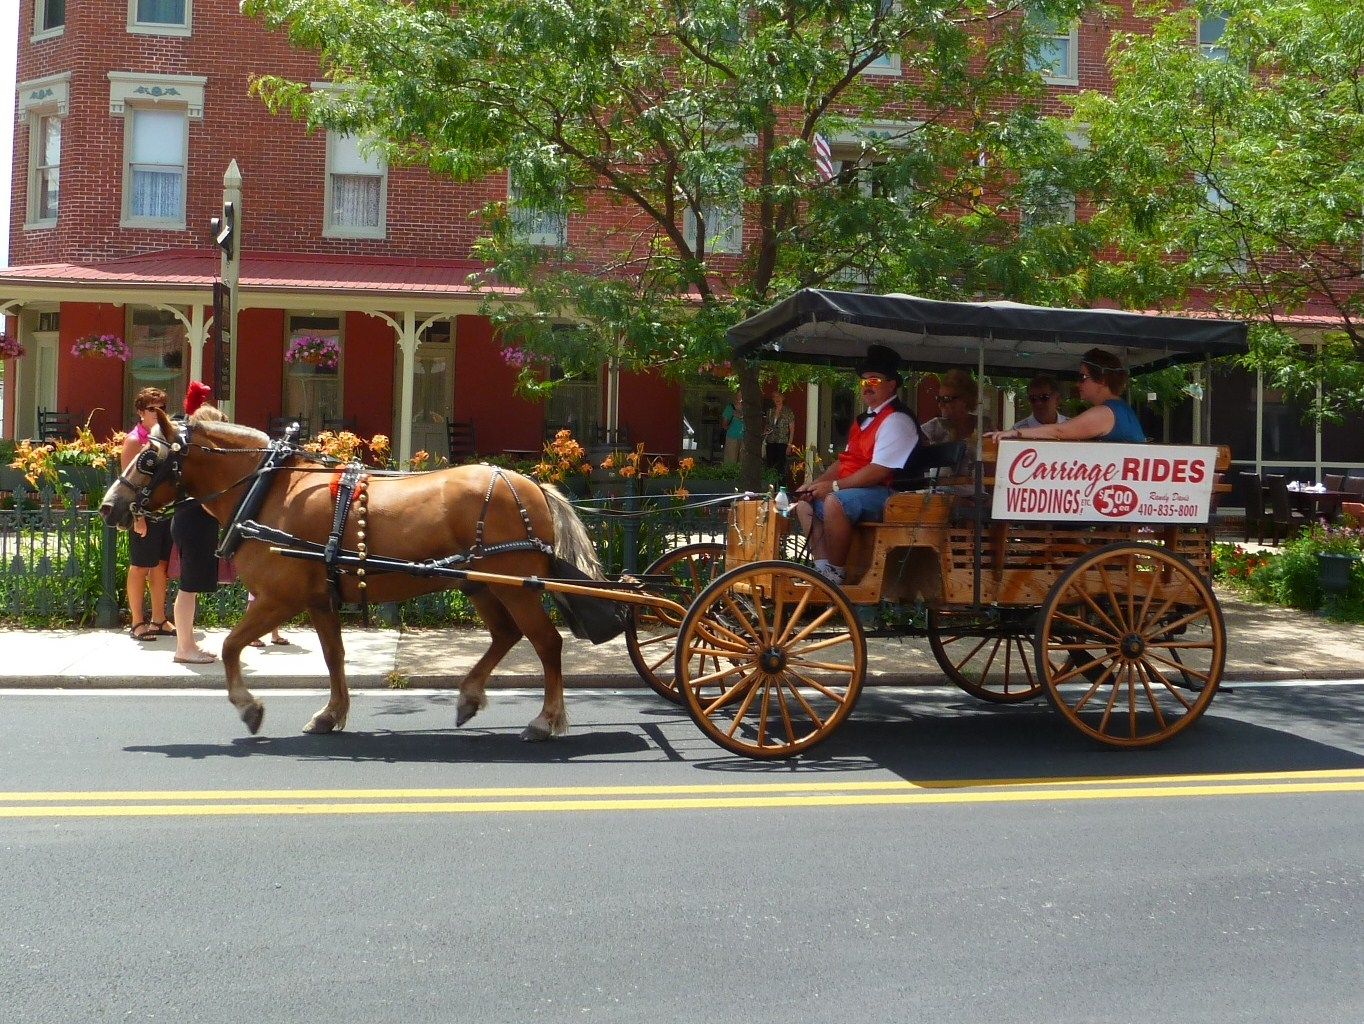 berlin-maryland-horse-and-carriage-rides.jpeg?mtime=20140903194310#asset:17333